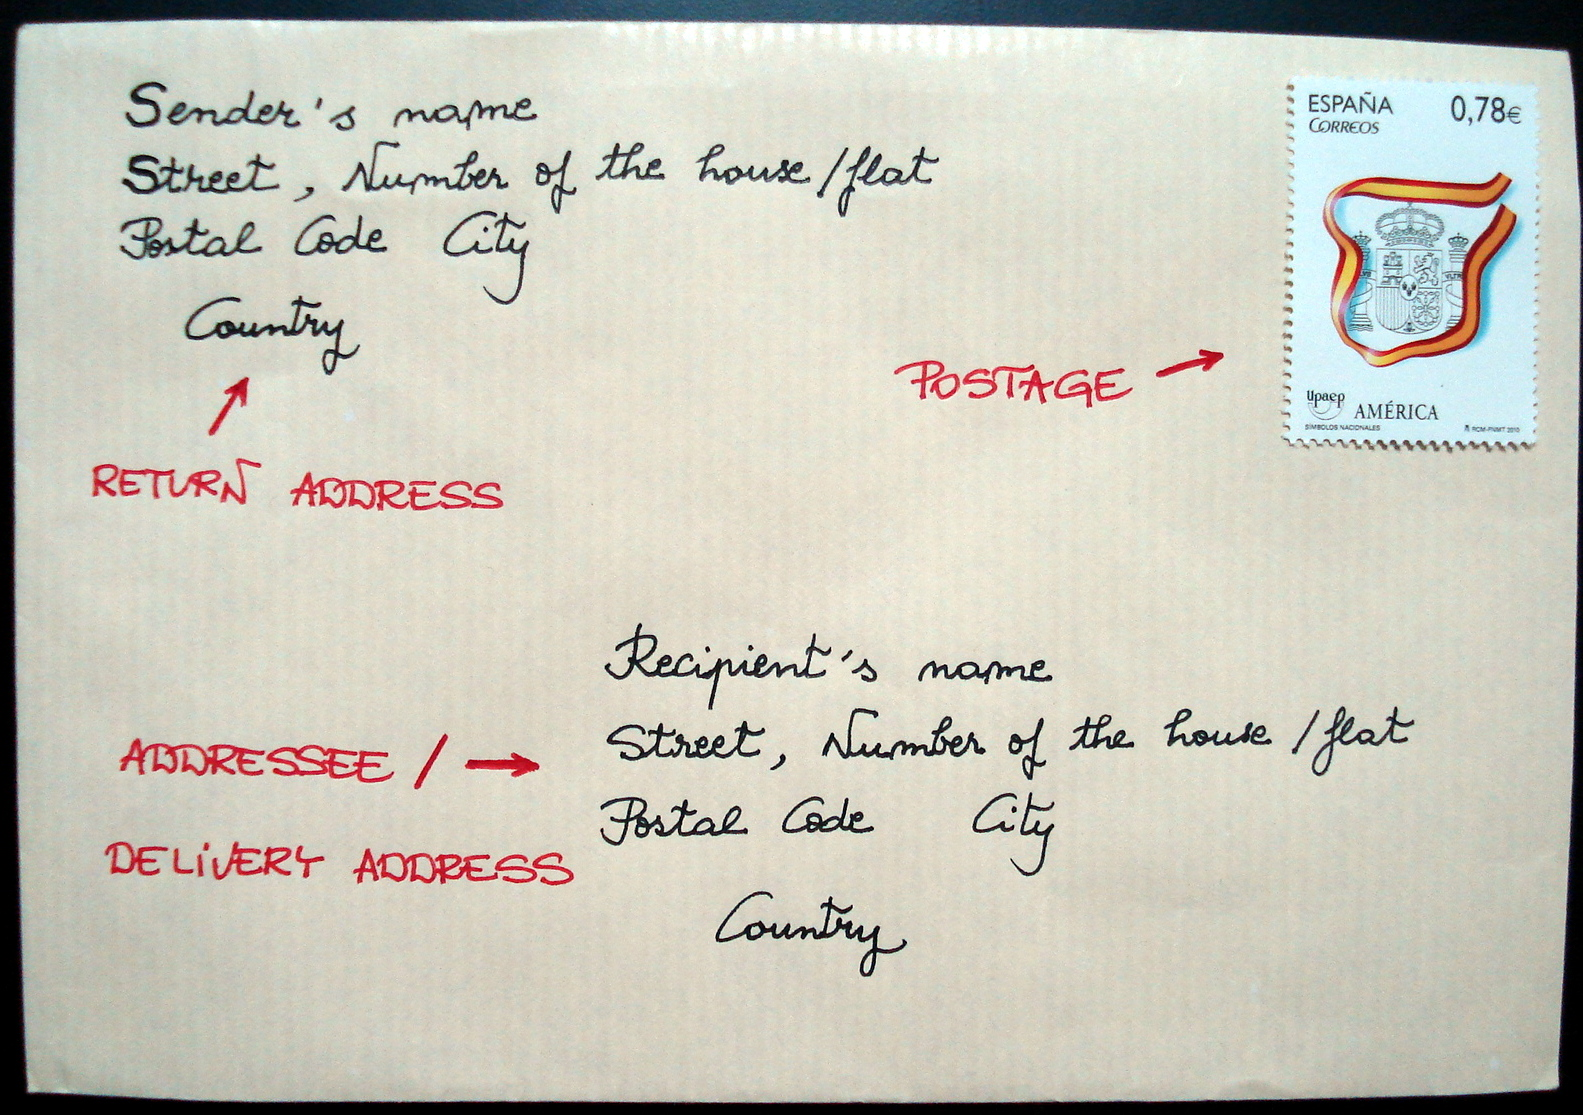 Penpalling and Letters: How to address an envelope